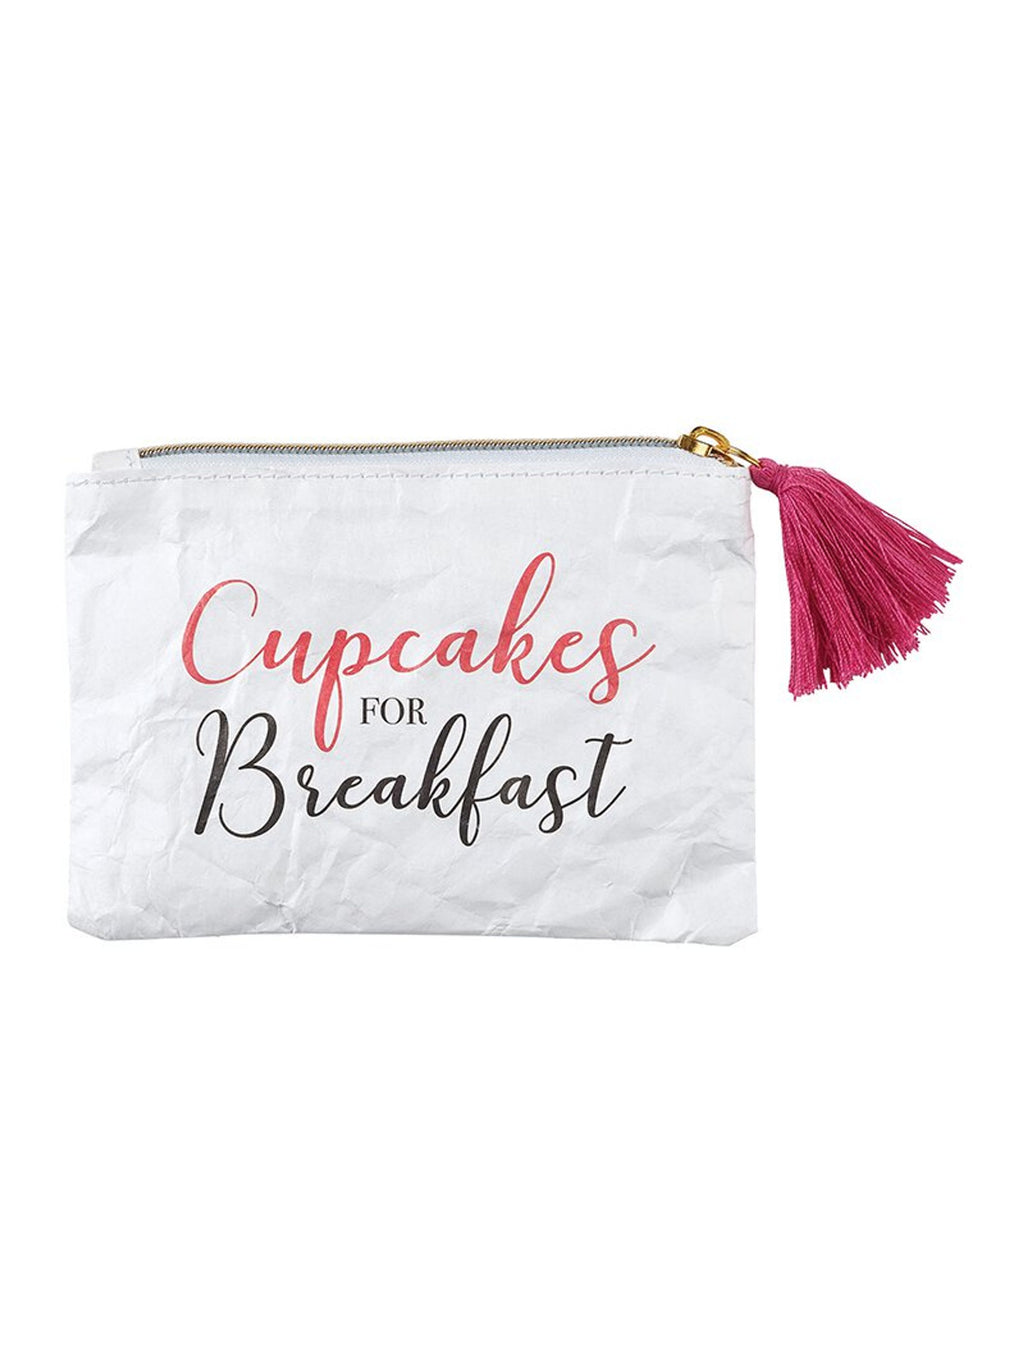 Cupcakes For Breakfast - Tyvek Coin Purse